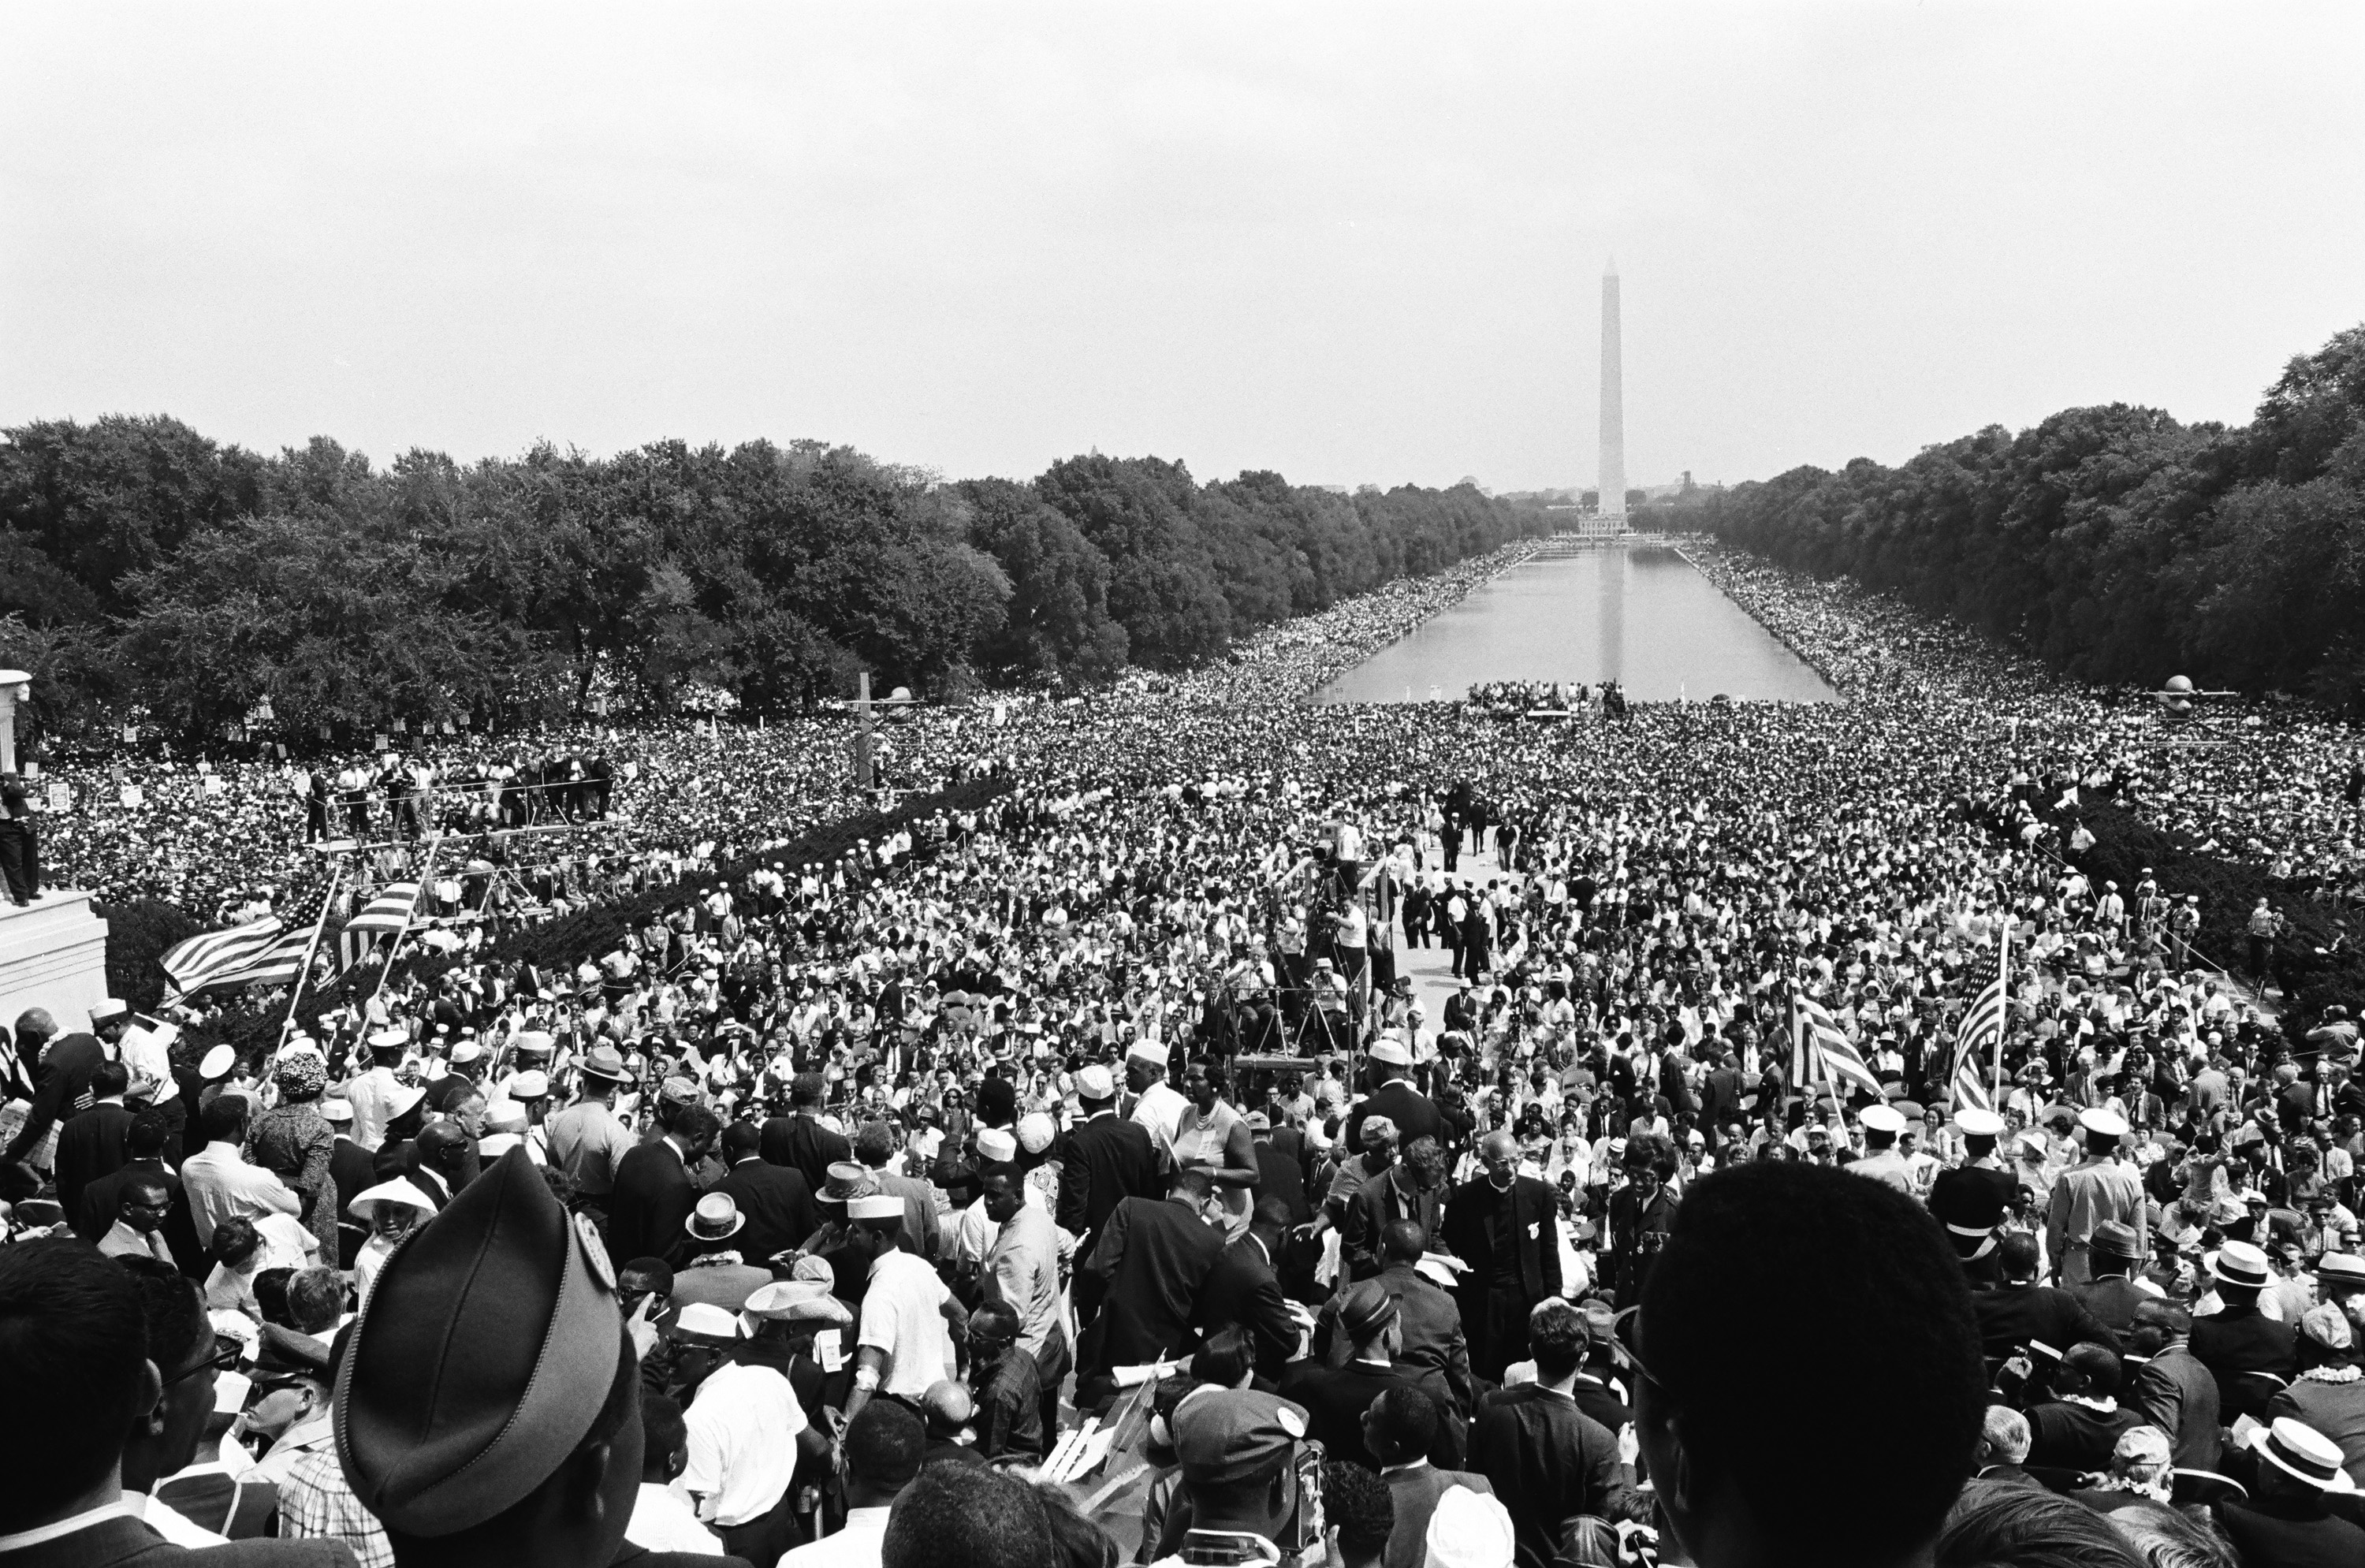 NBC News: March on Washington for Jobs and Freedom 1963